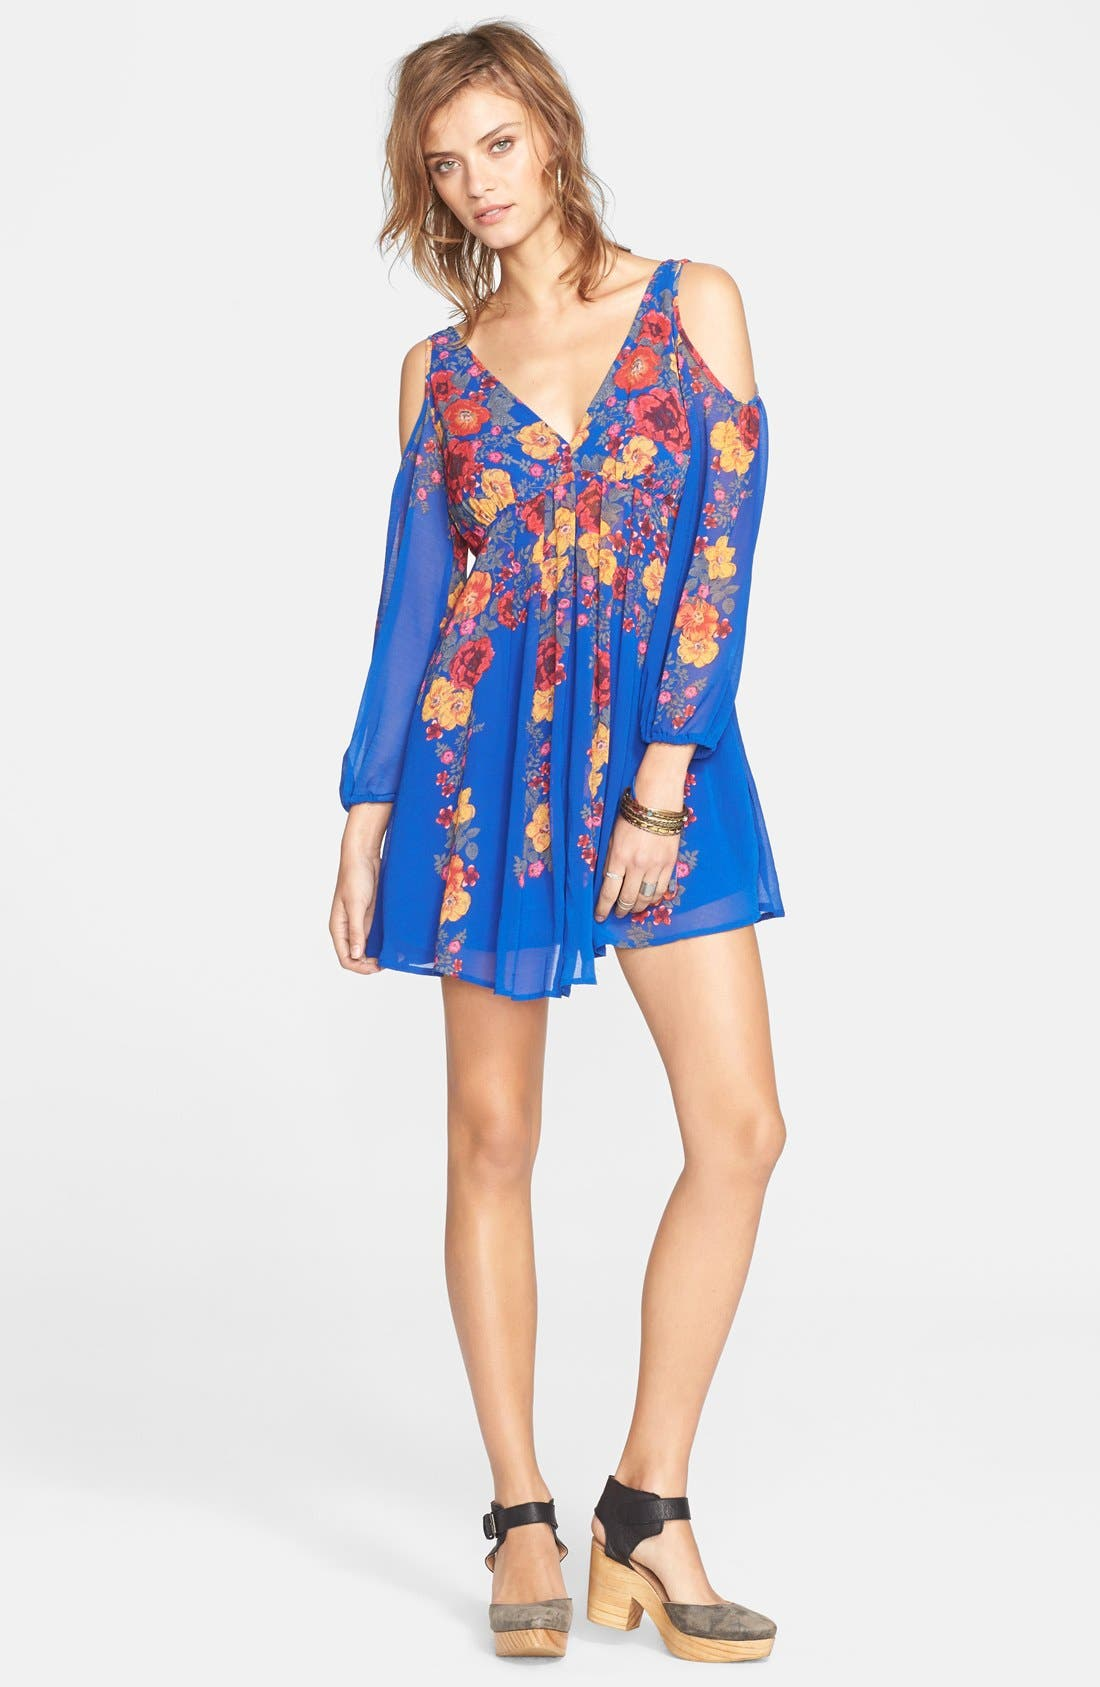 Alternate Image 1 Selected - Free People 'Penny Lover' Chiffon Cold Shoulder Mini Dress